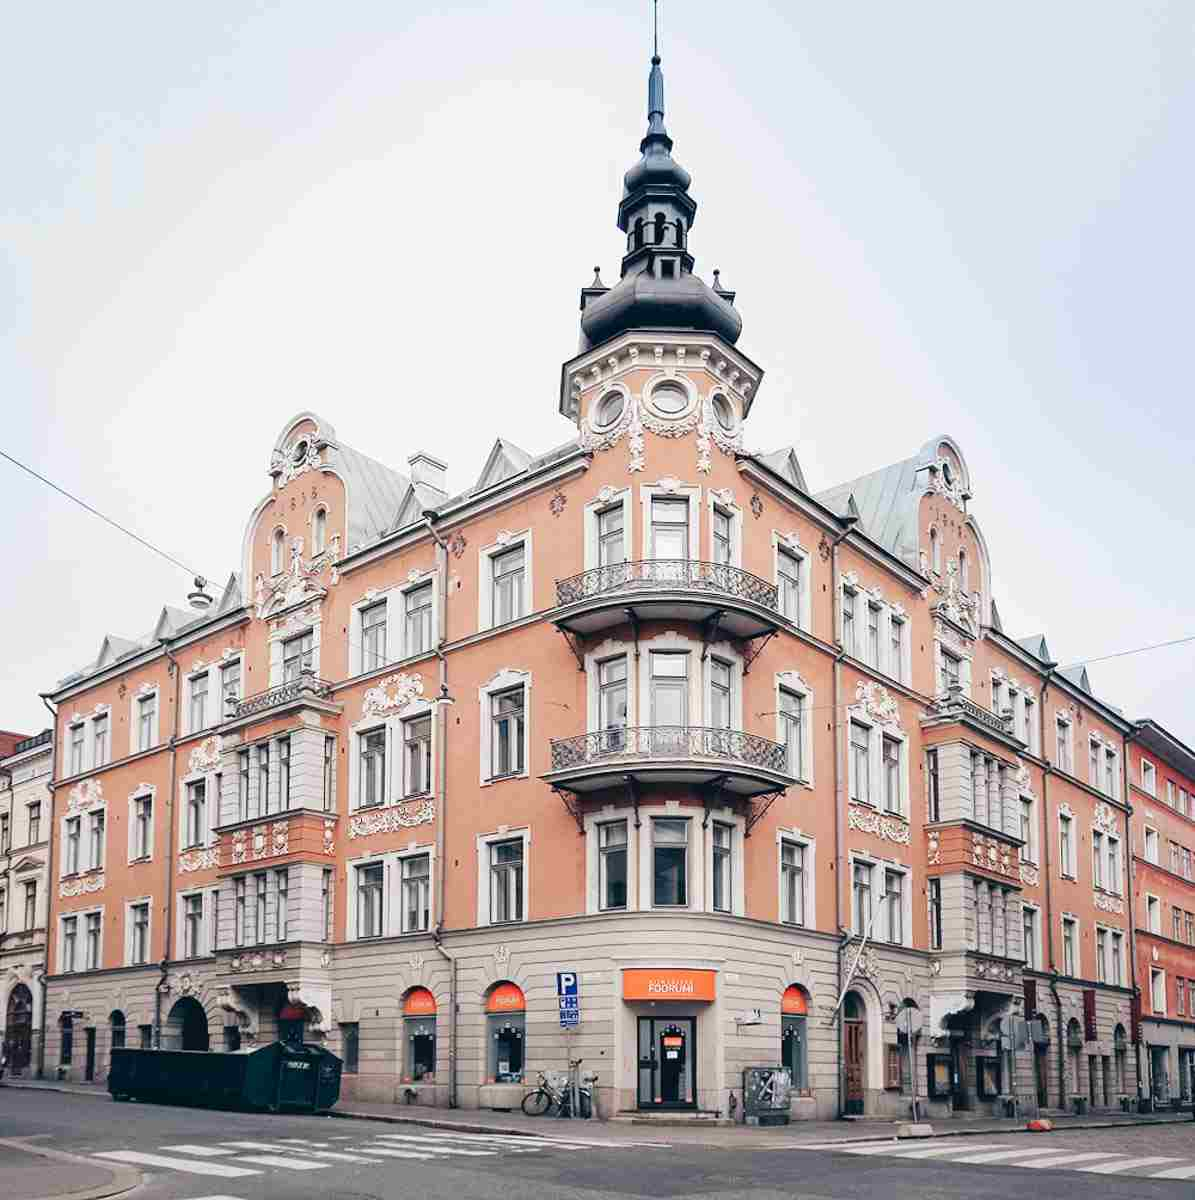 Things to do in Helsinki: Beautiful Art Nouveau style edifice in Helsinki